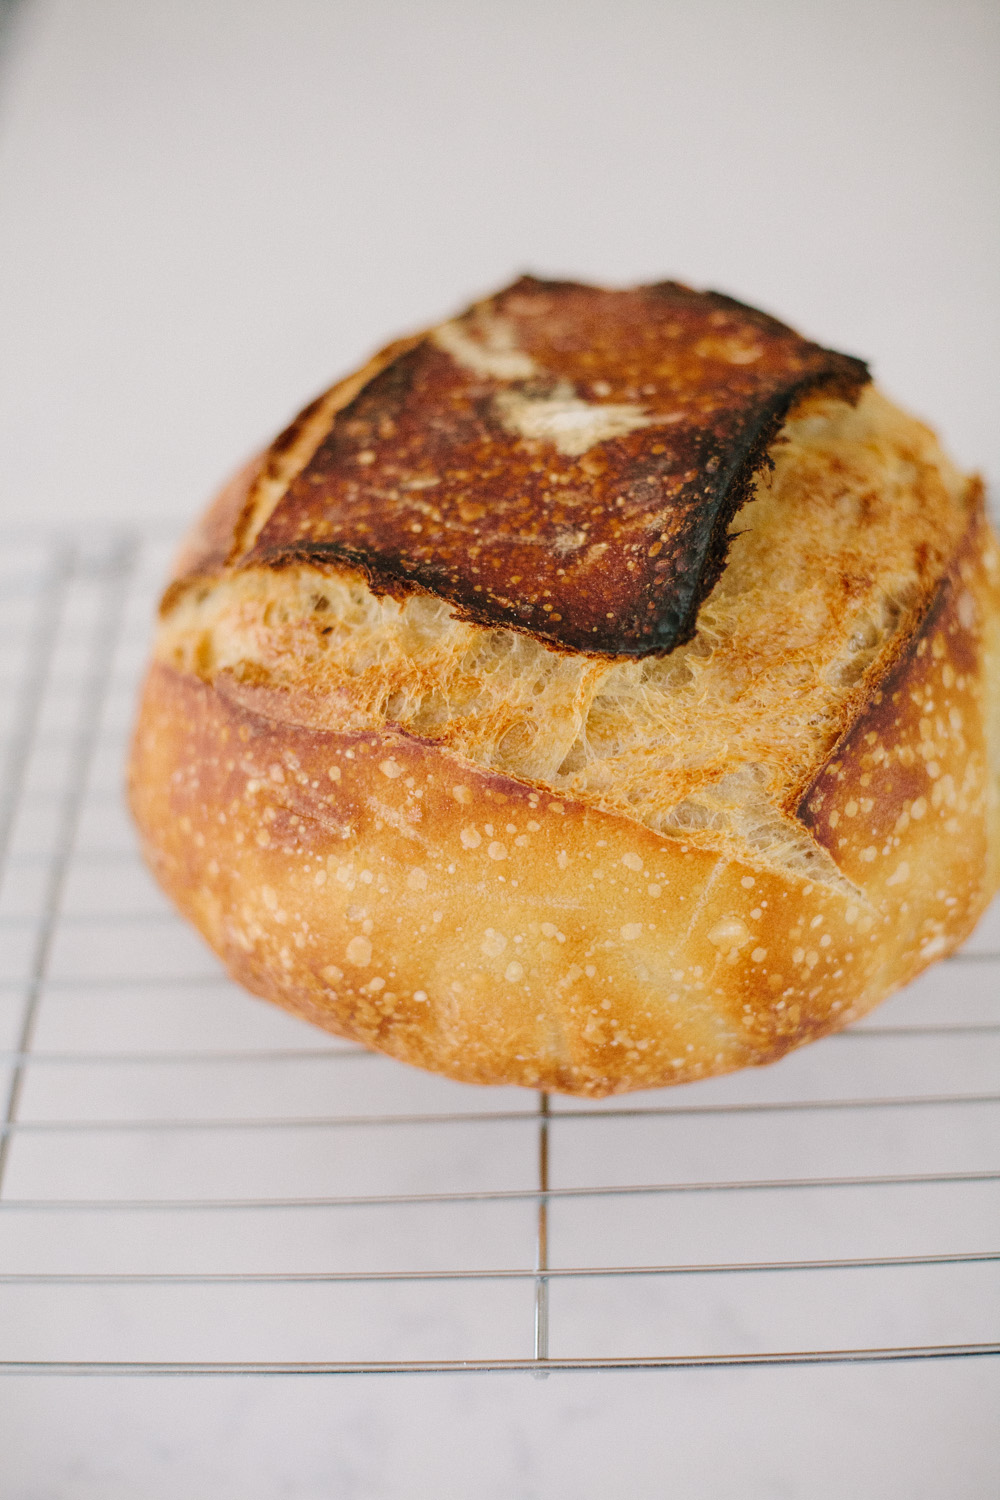 why is sourdough good for you?